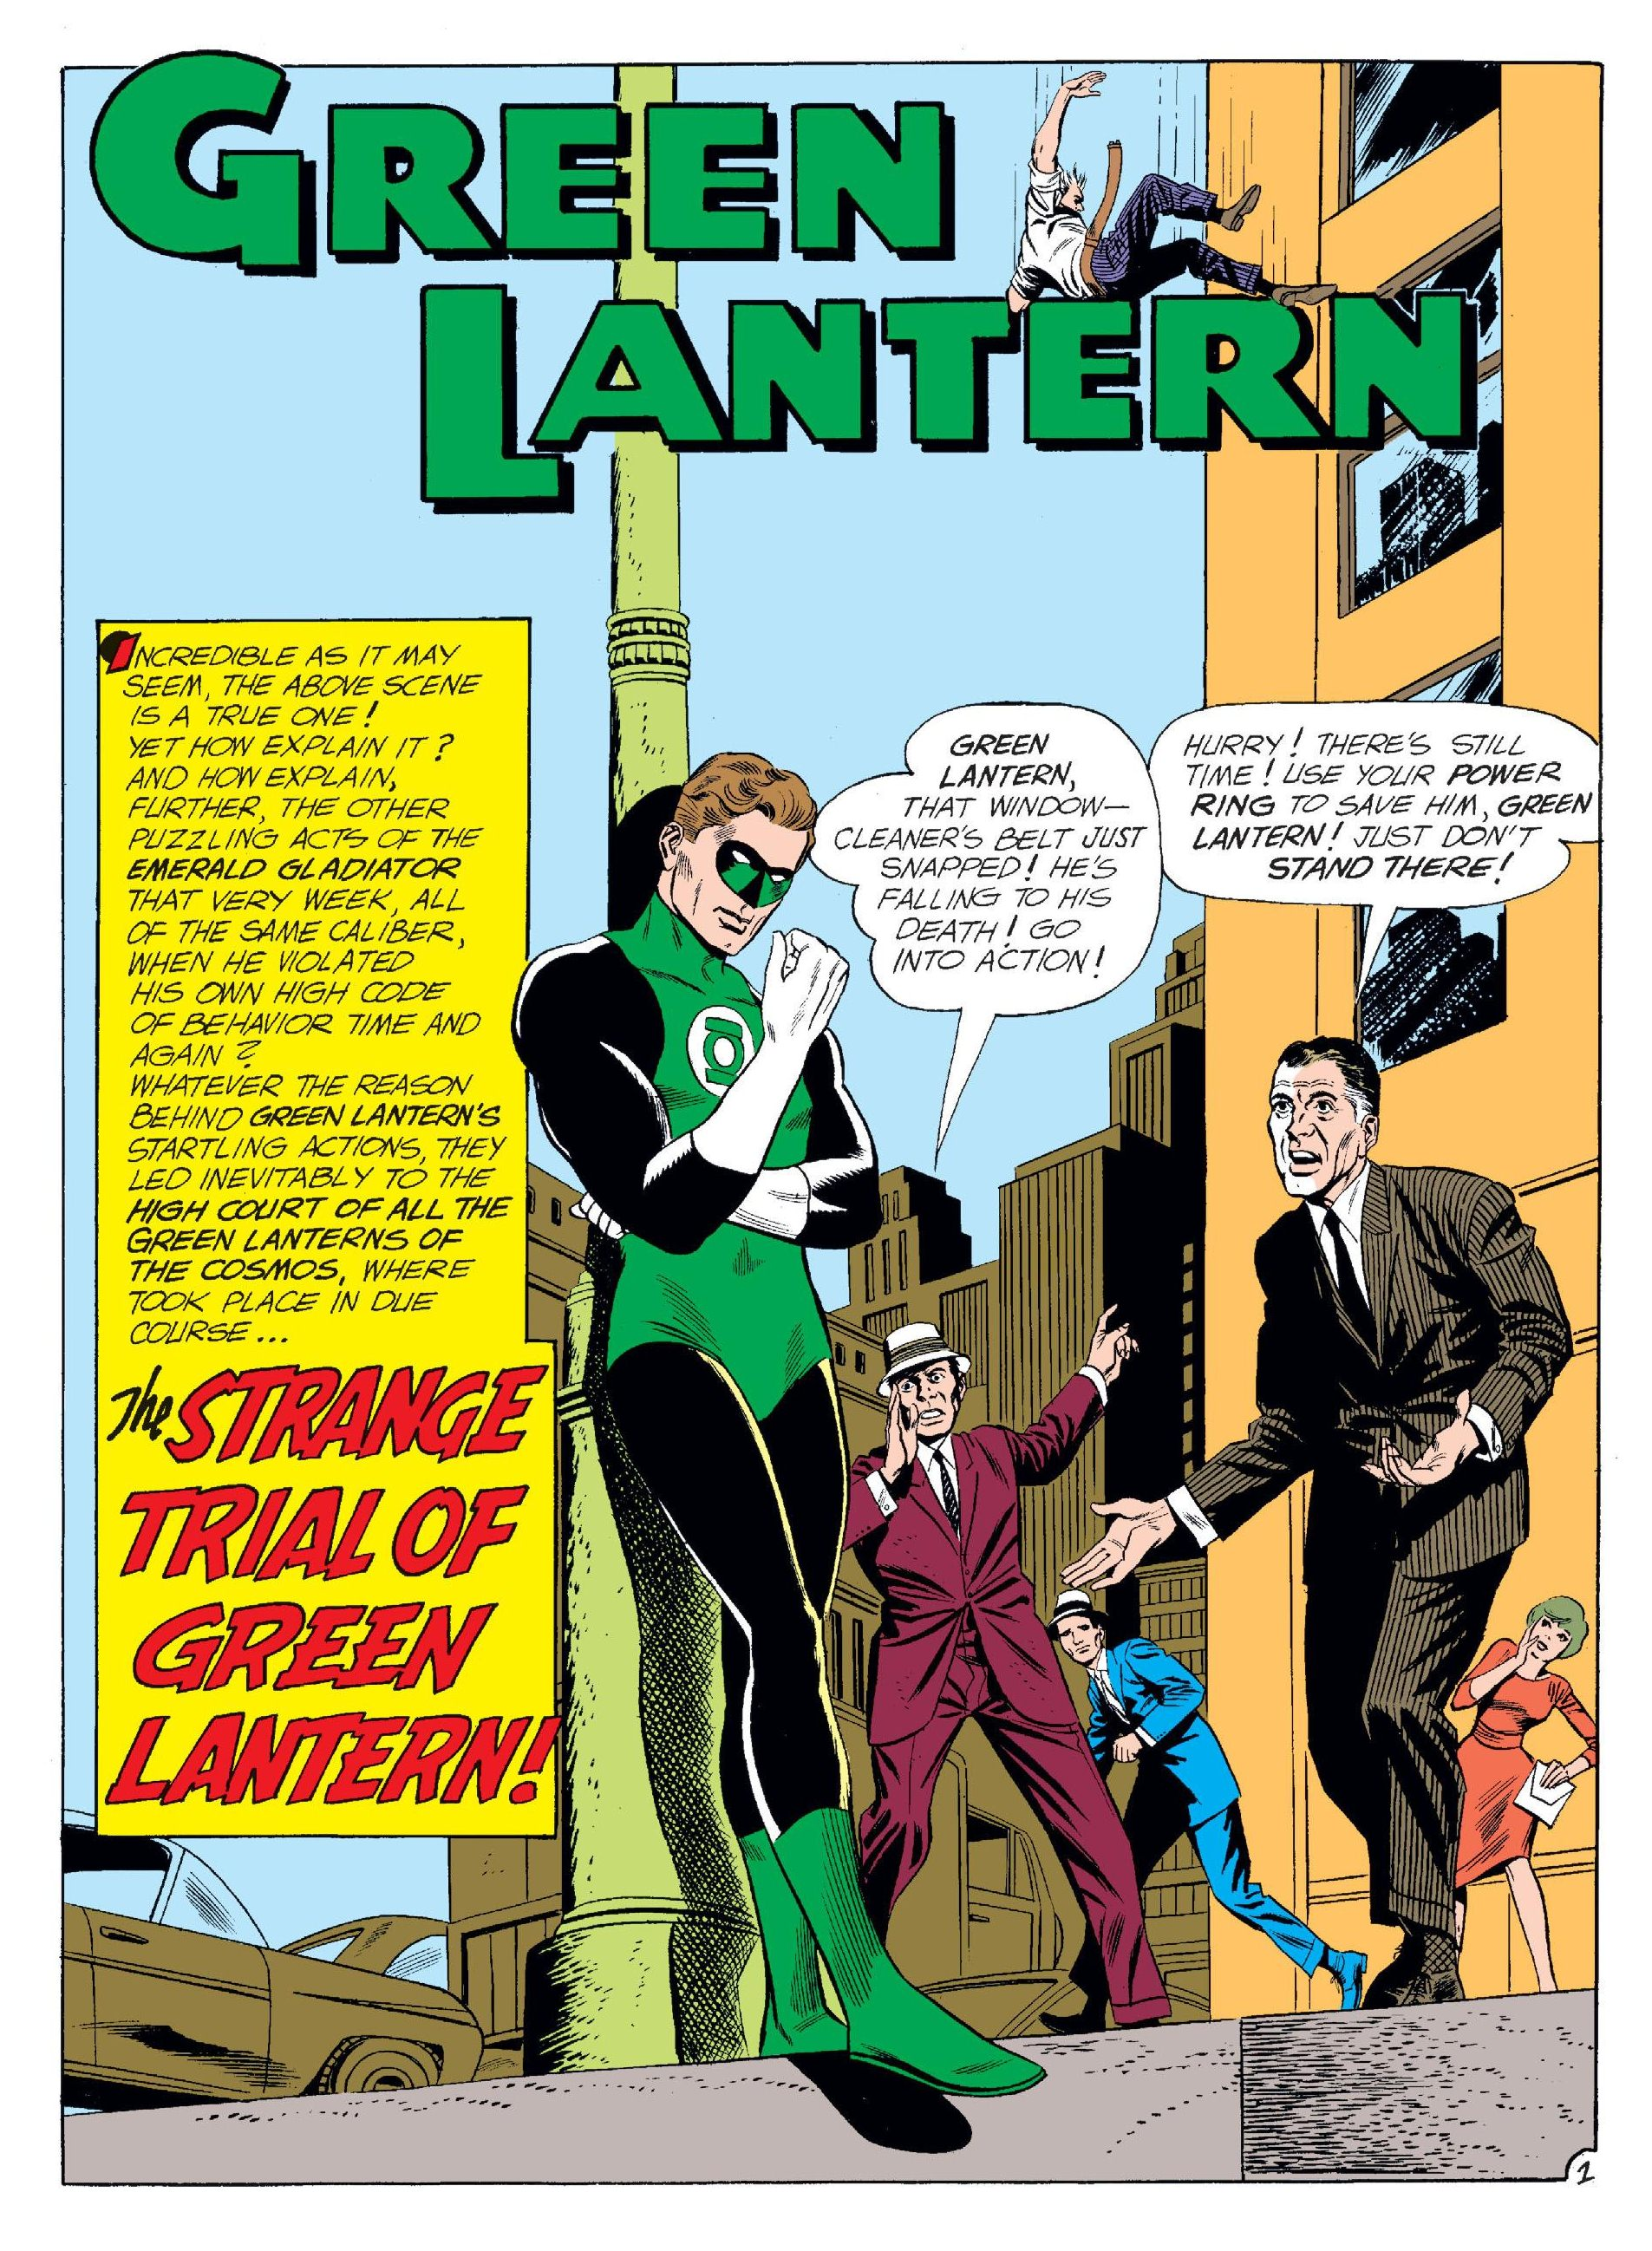 Green Lantern A Celebration Of 75 Years review